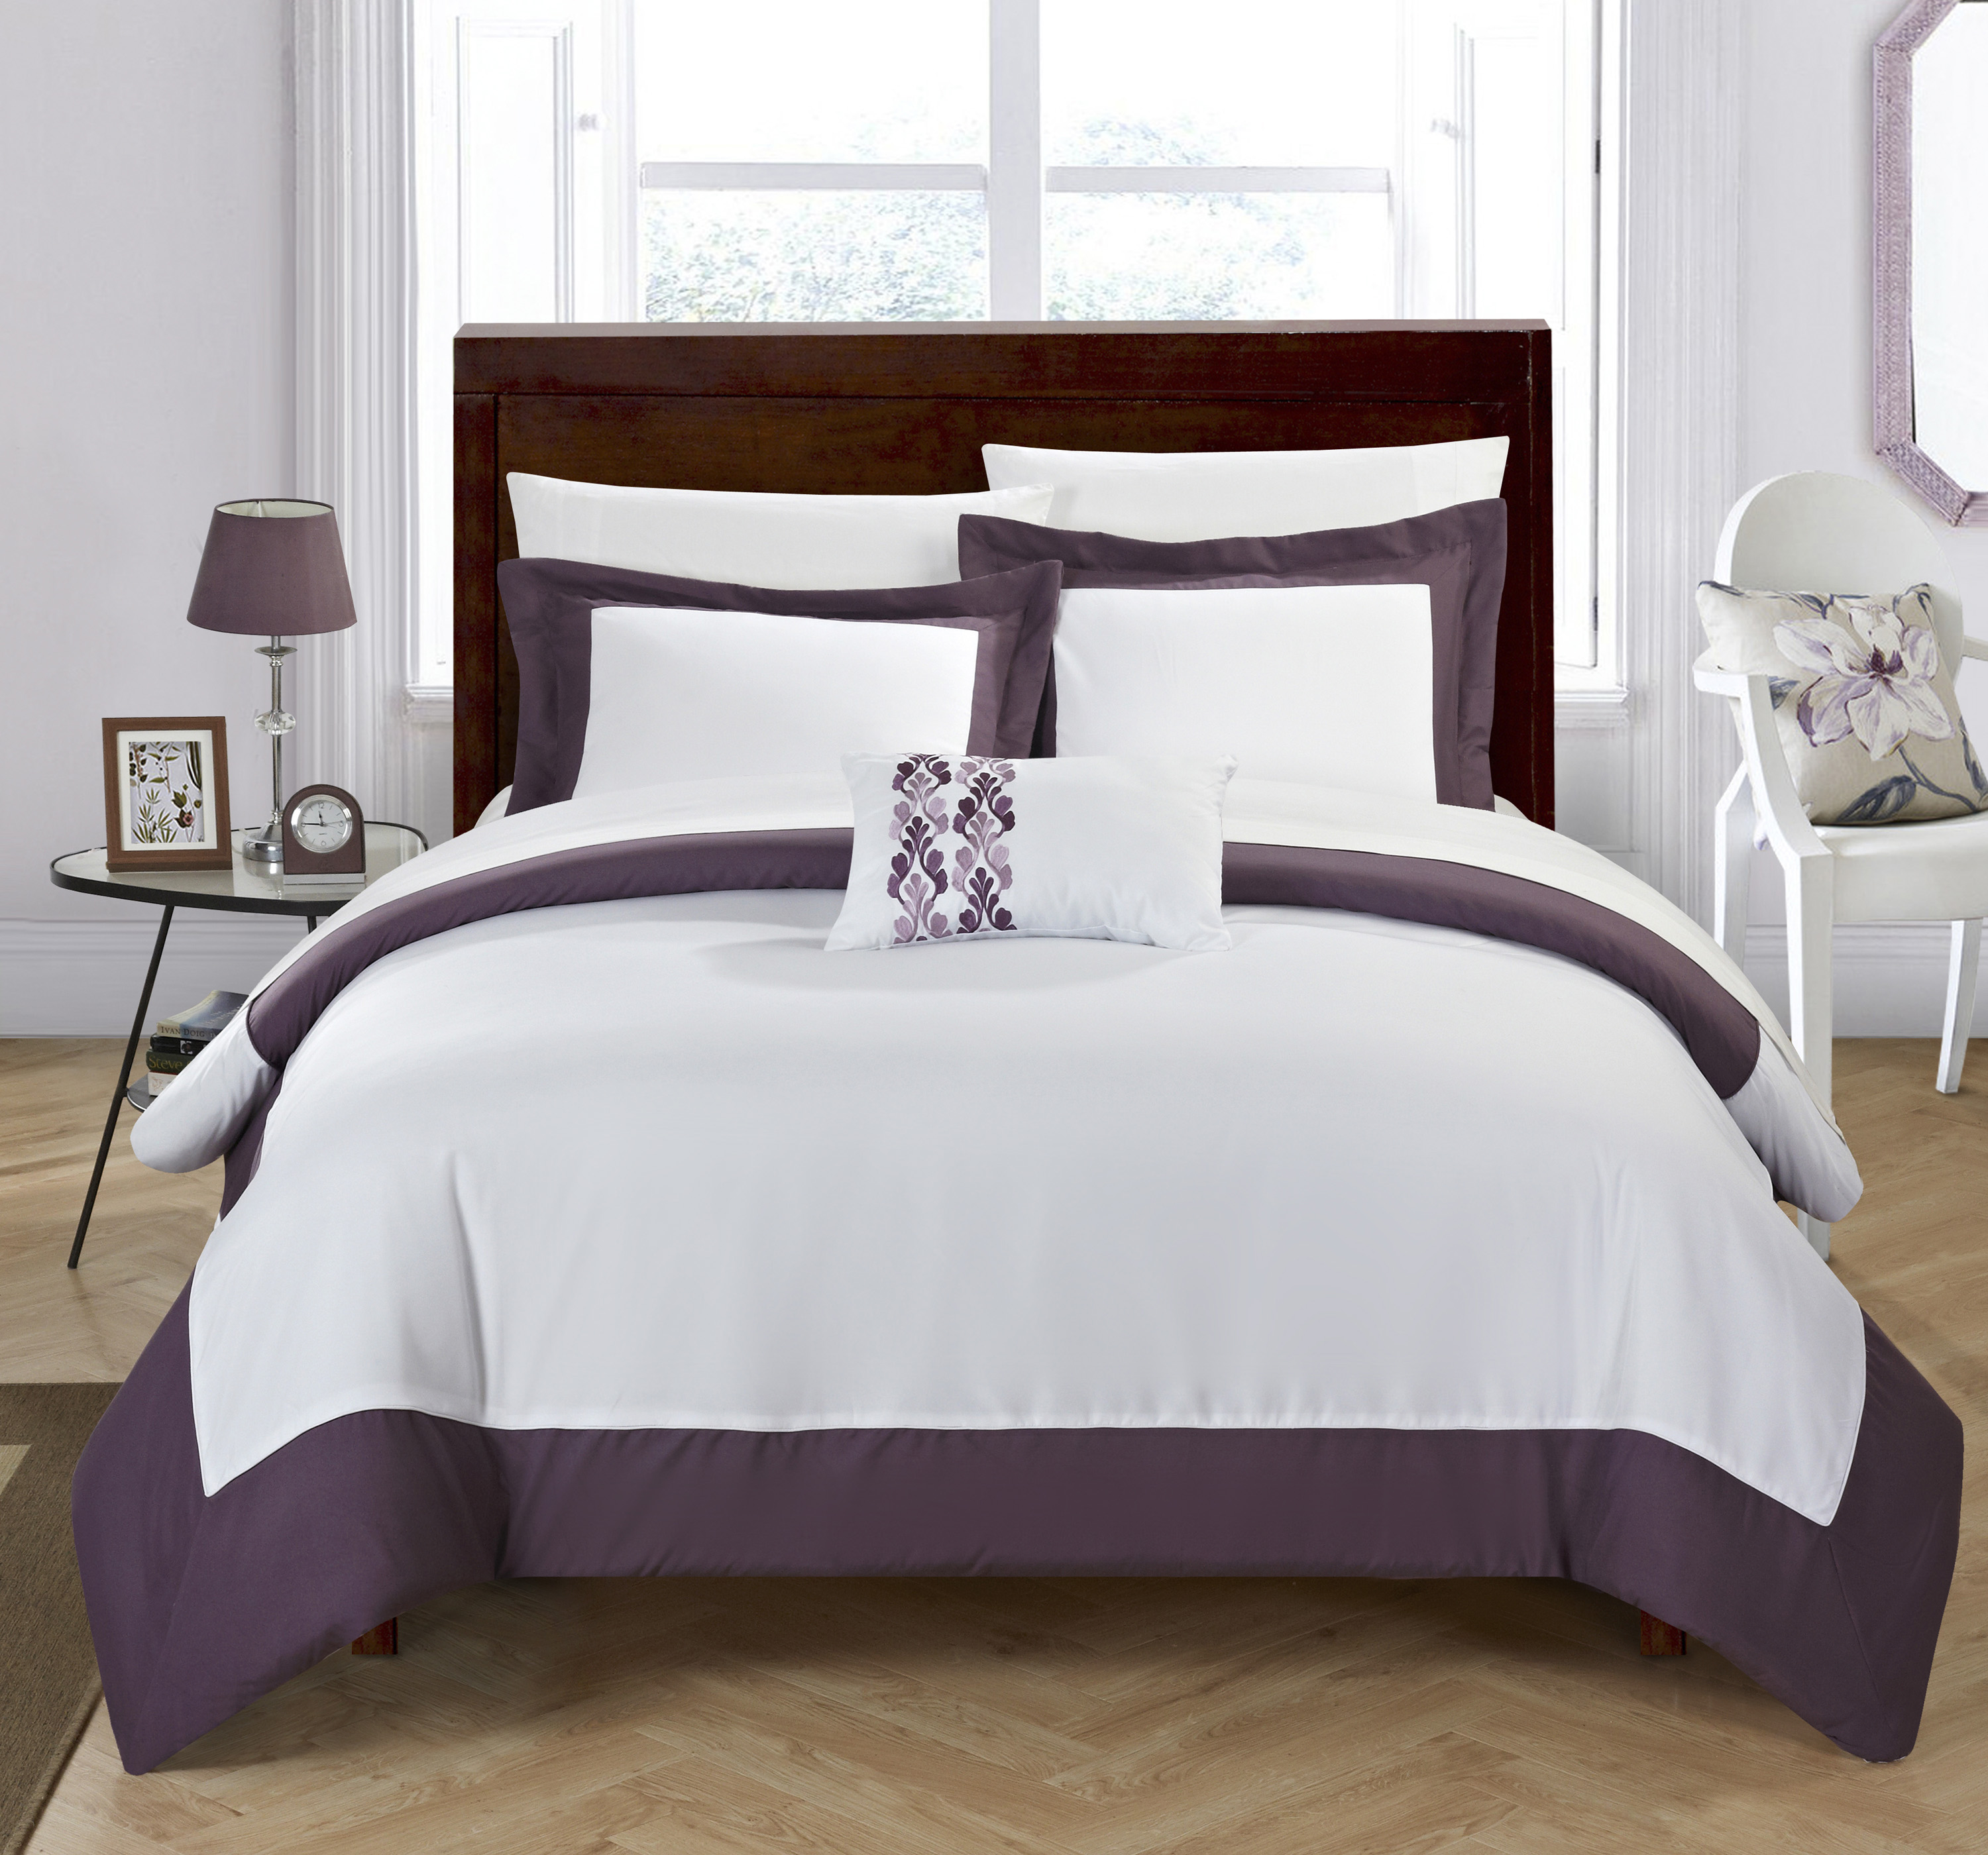 Chic Home 8-Piece Uma MODERN TWO TONE REVERSIBLE HOTEL COLLECTION, with embellished borders and embroidery decor pillow Queen Bed In a Bag Duvet Set Plum With White Sheets included